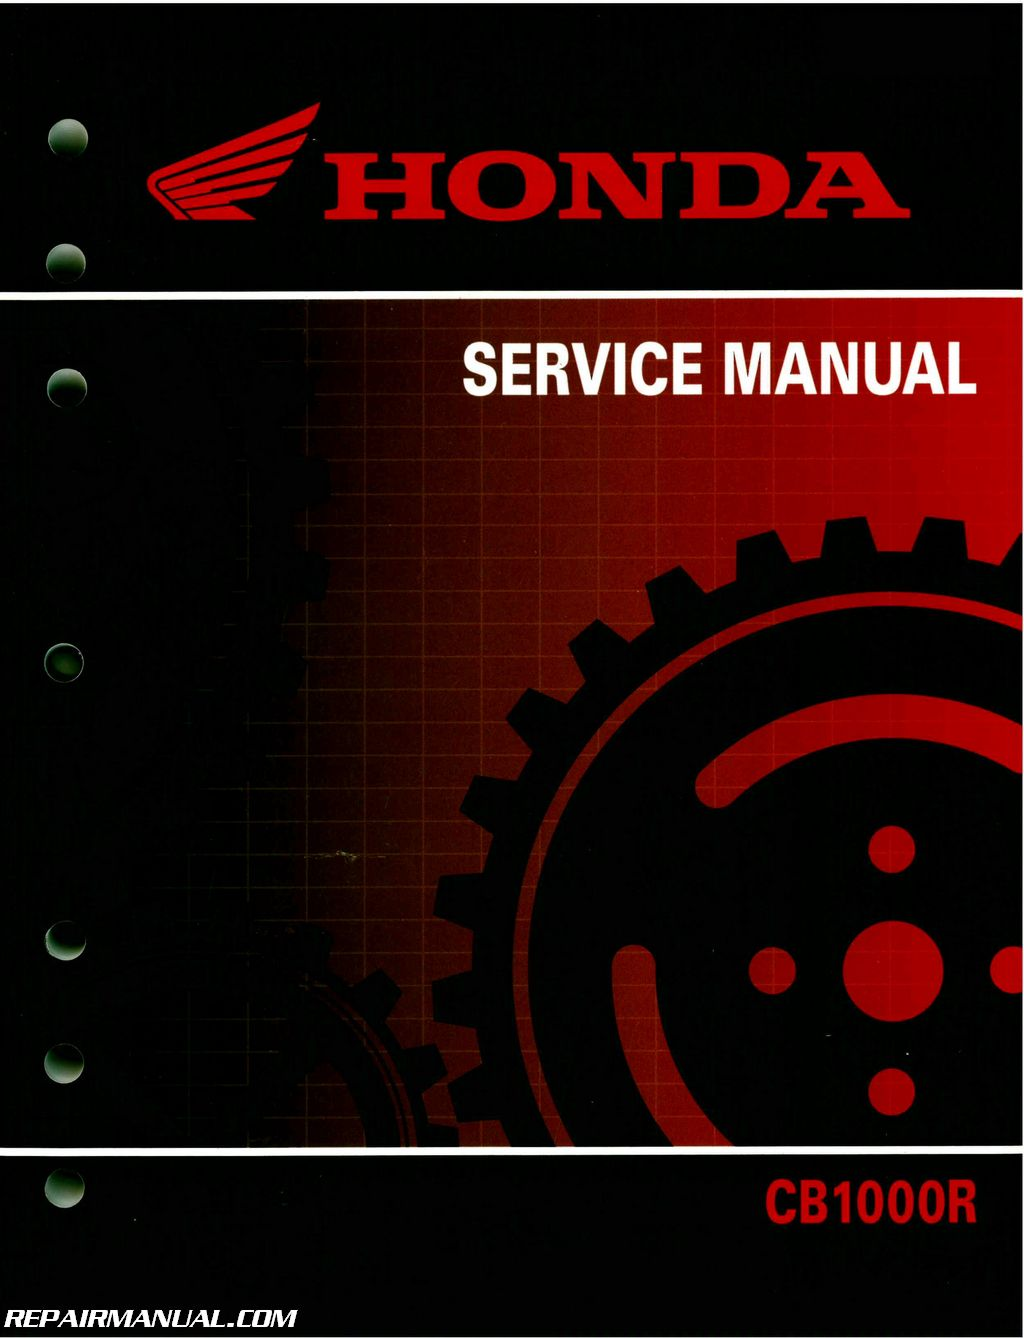 2011 2015 honda cb1000r motorcycle service manual repair manuals 2011 2014 honda cb1000r service manual